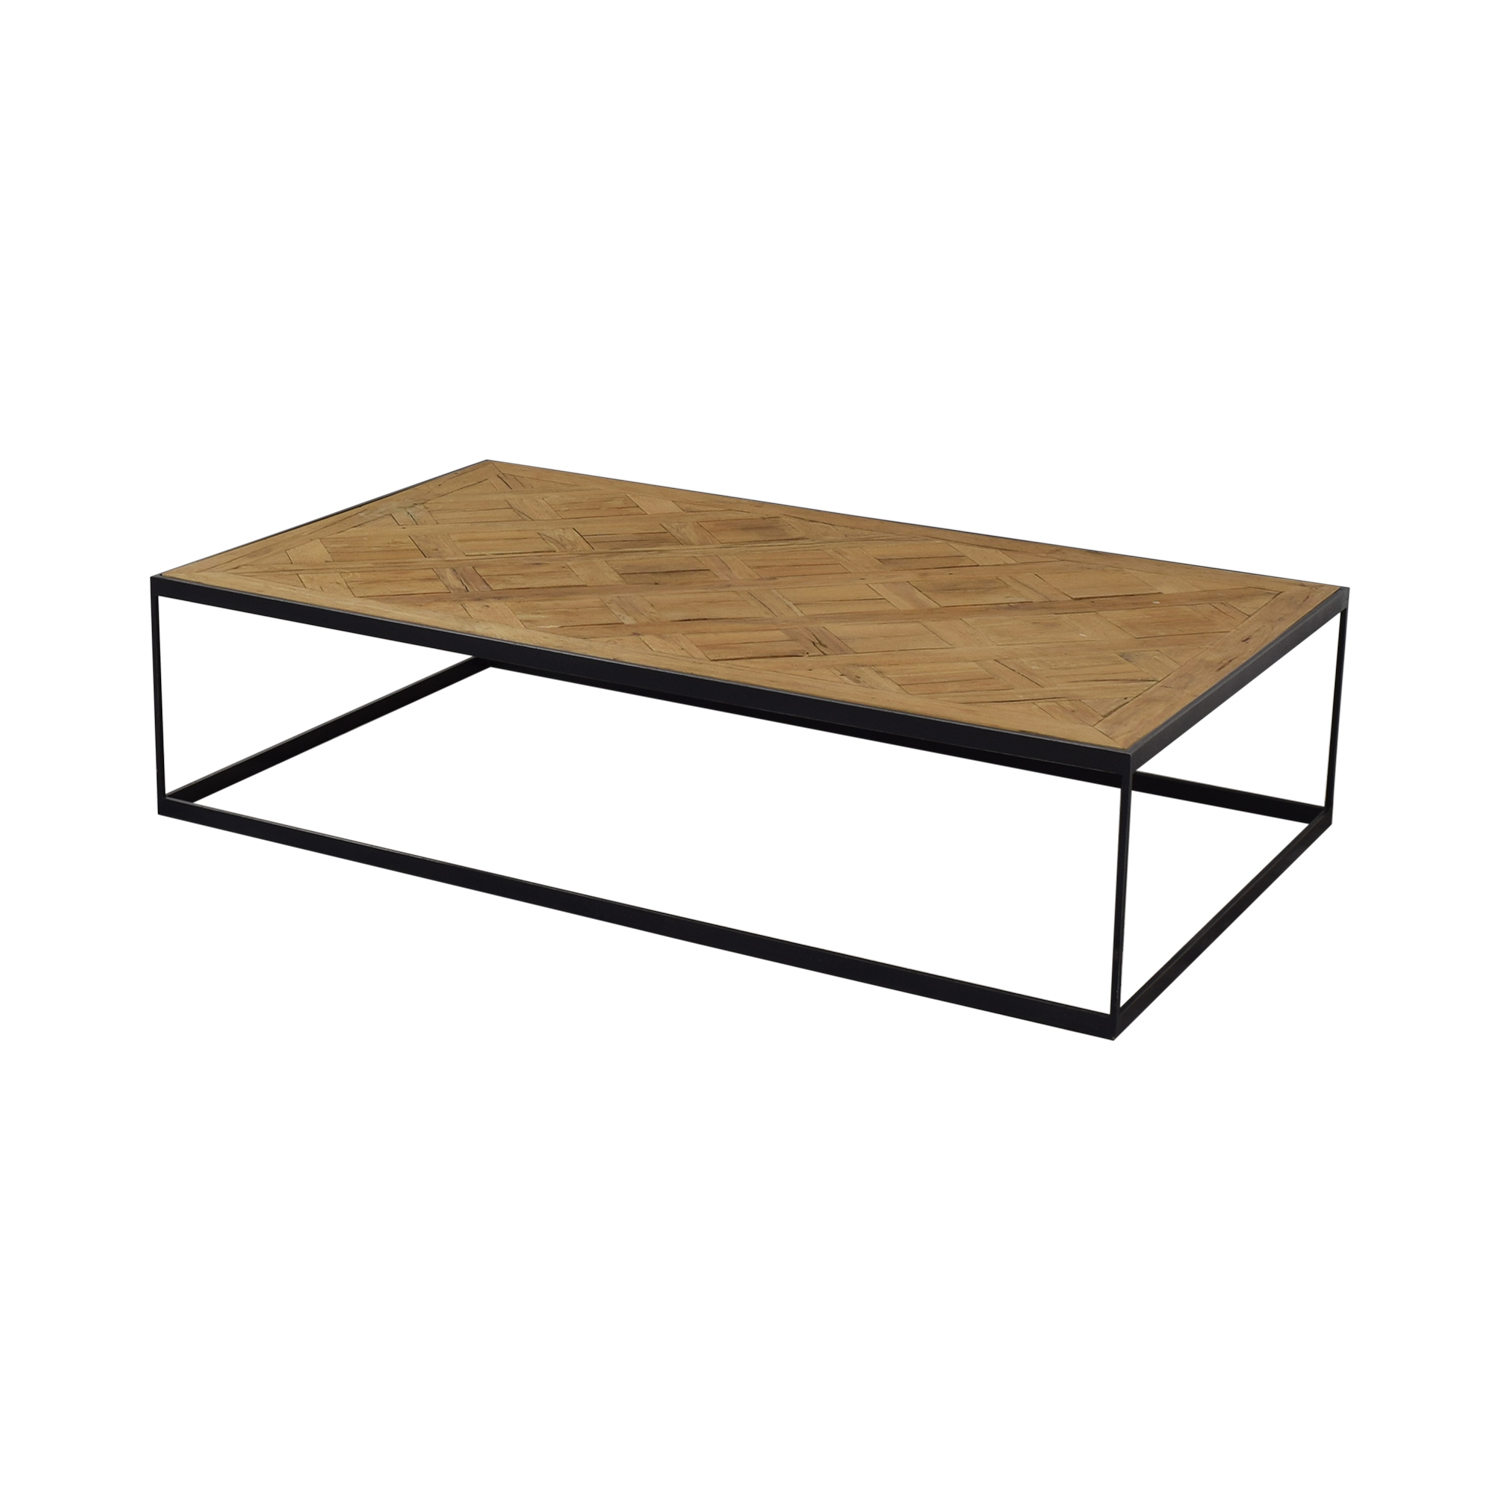 Restoration Hardware Square Coffee Table sale